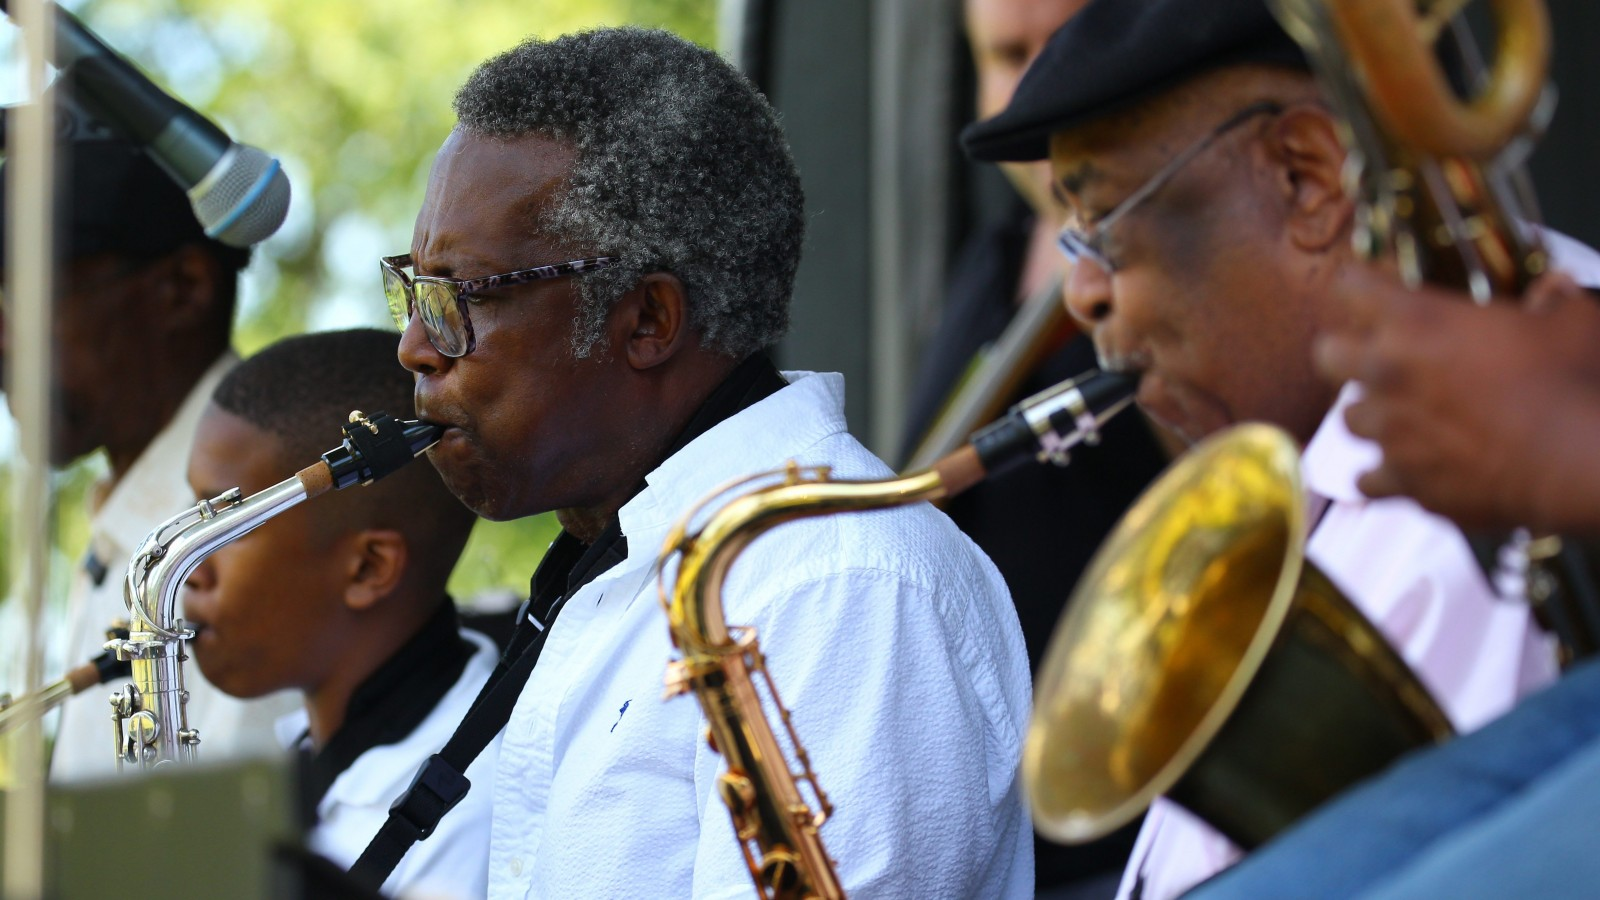 The Larry Salter Soul Orchestra performed at the 20th annual Masten Jazz Festival in Martin Luther King Jr. Park. (Mark Mulville/Buffalo News)